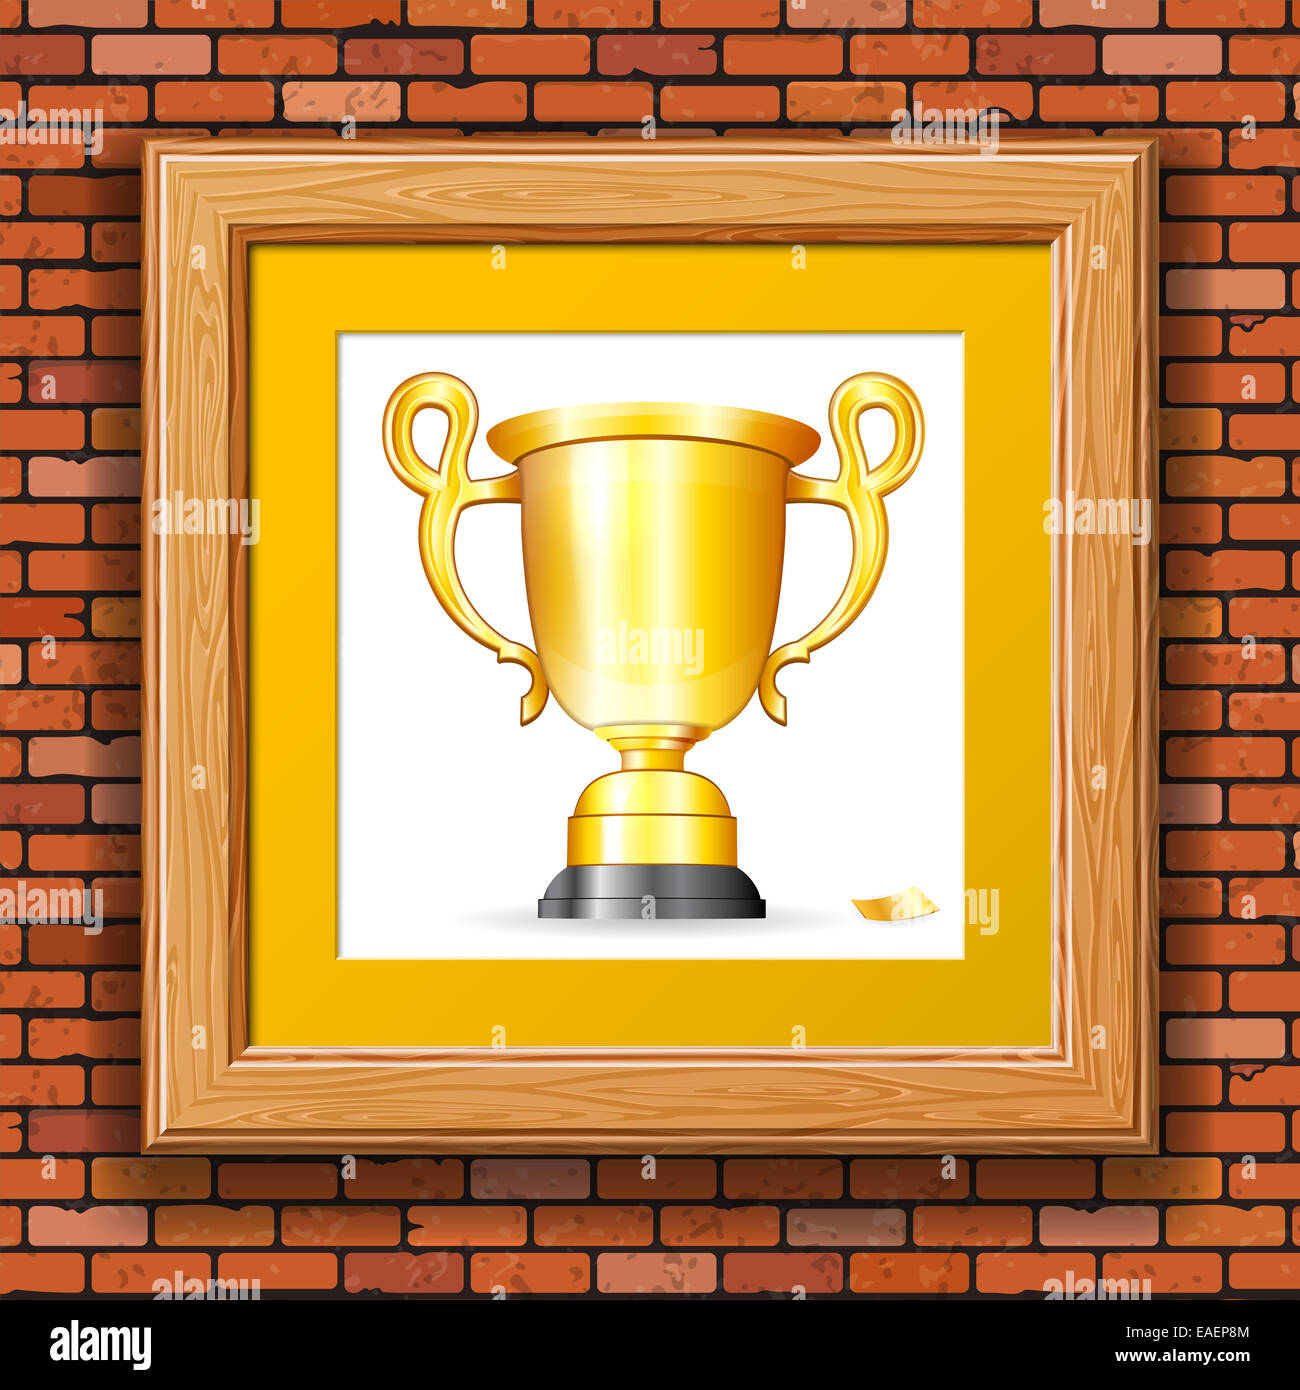 Brick Wall with Gold Prize Award in Wooden Frame. illustration Stock ...